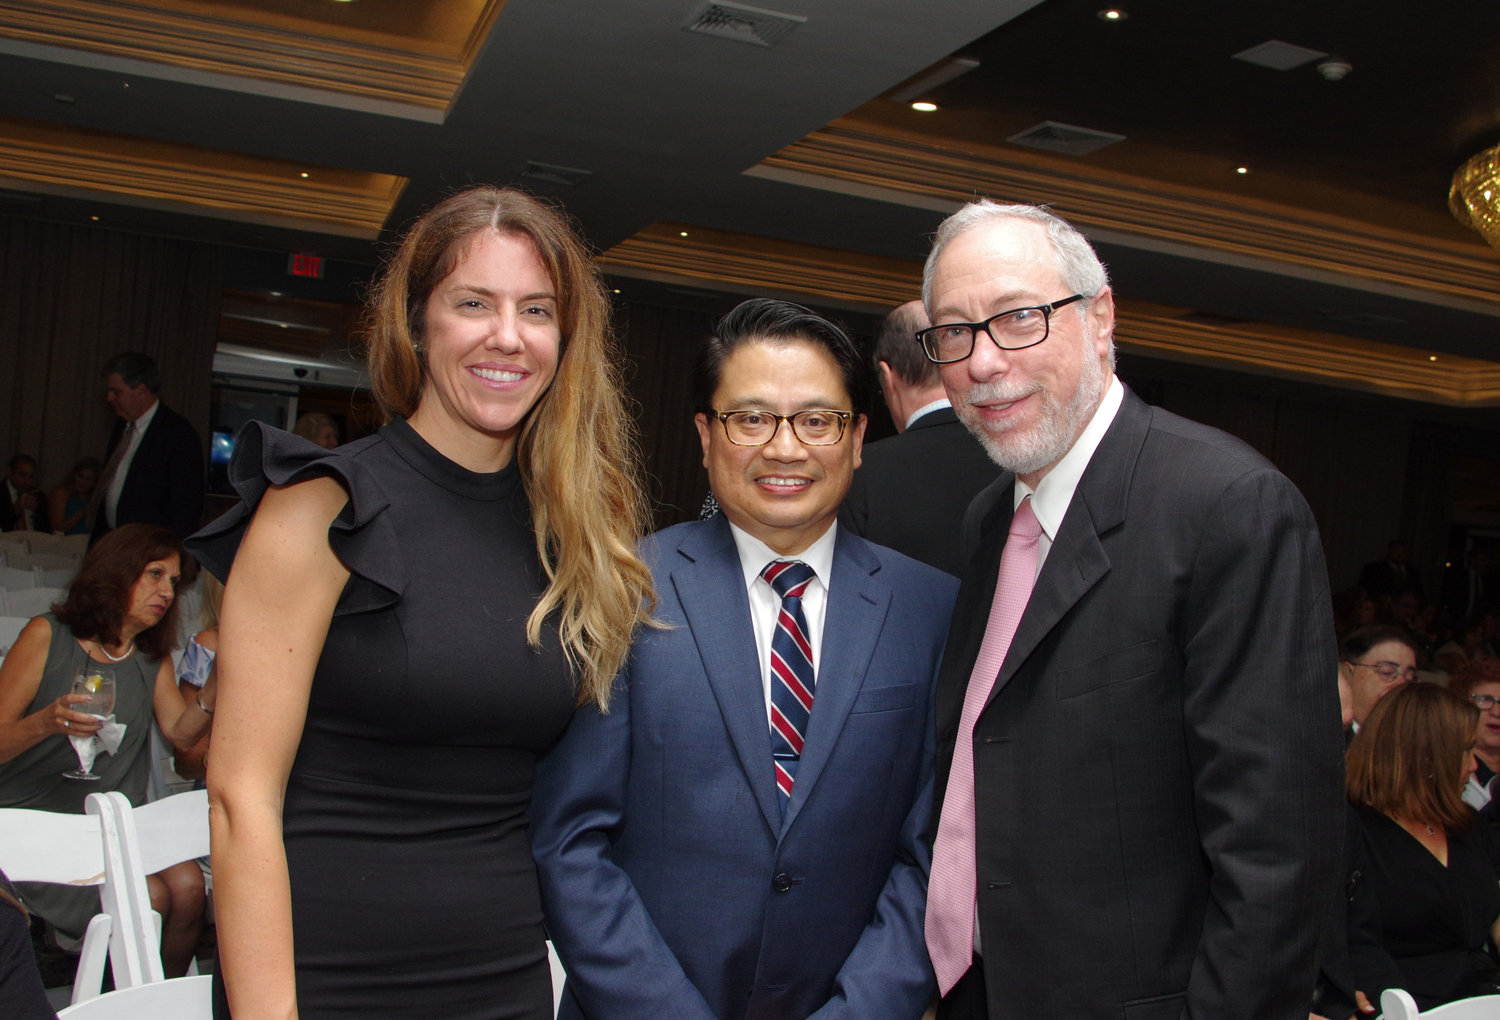 Mount Sinai South Nassau hospital hosted its annual Soiree Under the Stars gala on Sept. 28. Nurse Tracy Thorn, left, was recognized with the Cupola Award, while Dr. Ricardo Cruz, center, was honored with the Mary Pearson Award. Above, the two recipients with Department of Medicine Chairman Dr. Aaron Glatt.